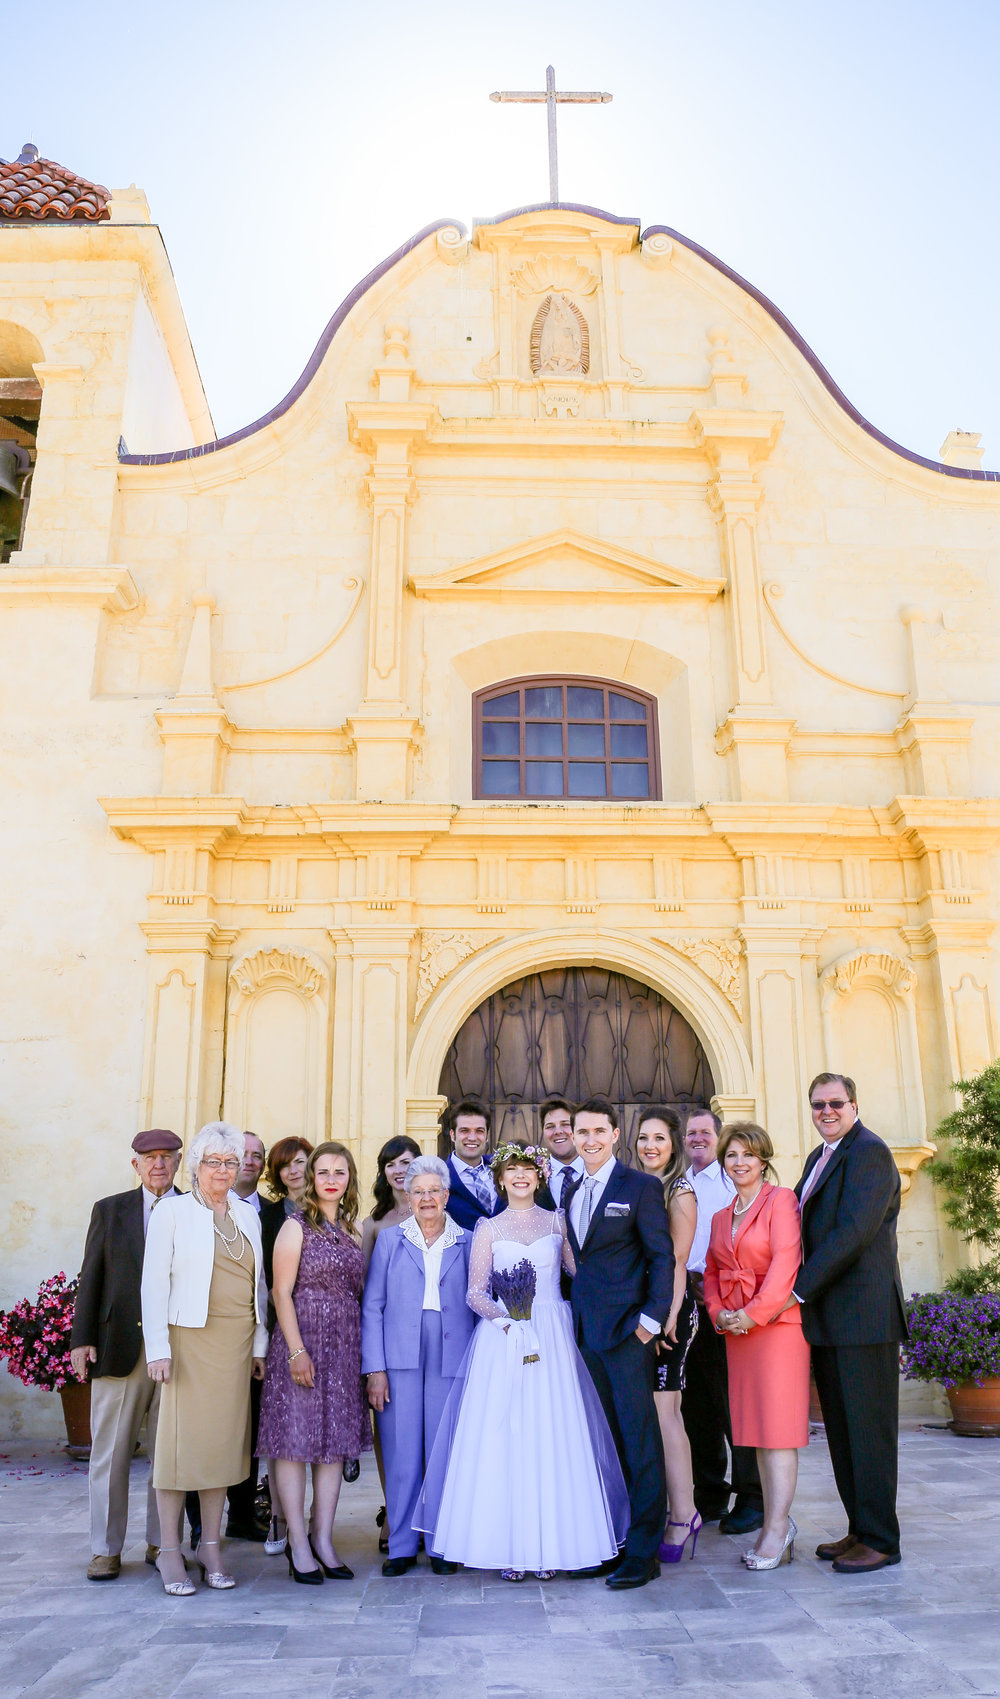 alexandra-rice-photography-monterey-wedding-family-portrait-san-carlos-cathedral.jpg